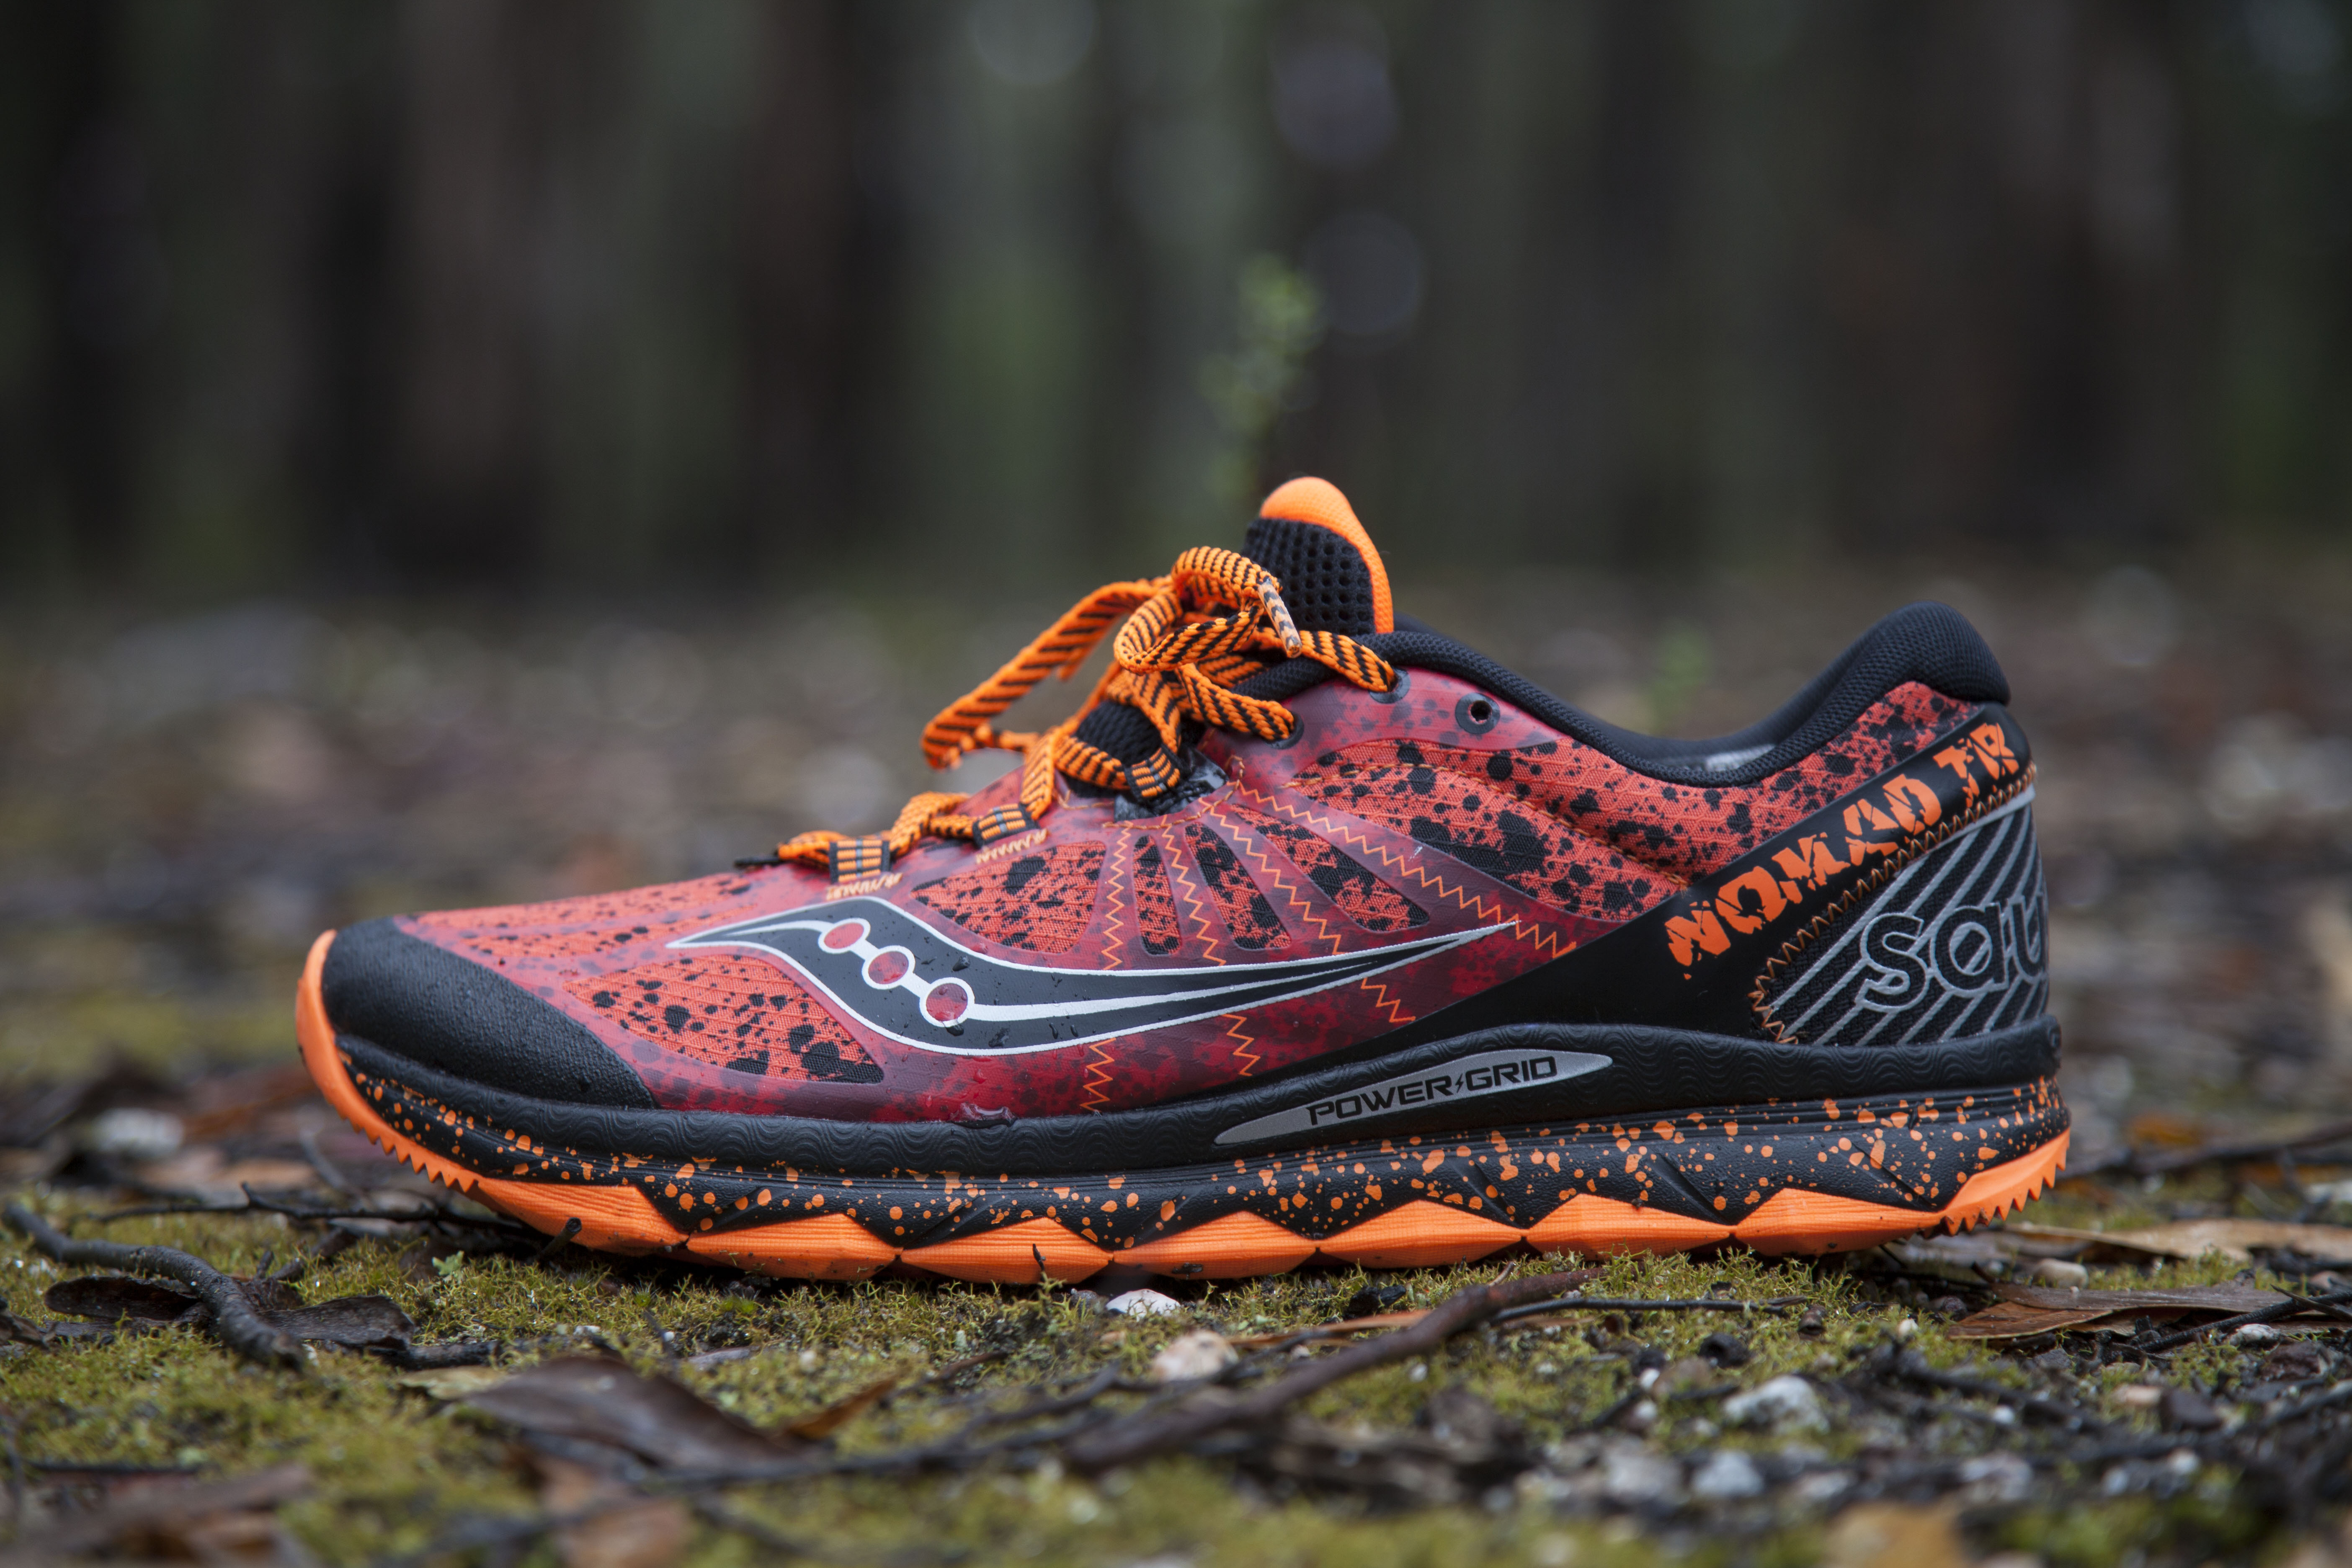 Saucony Nomad Trail Shoe Review